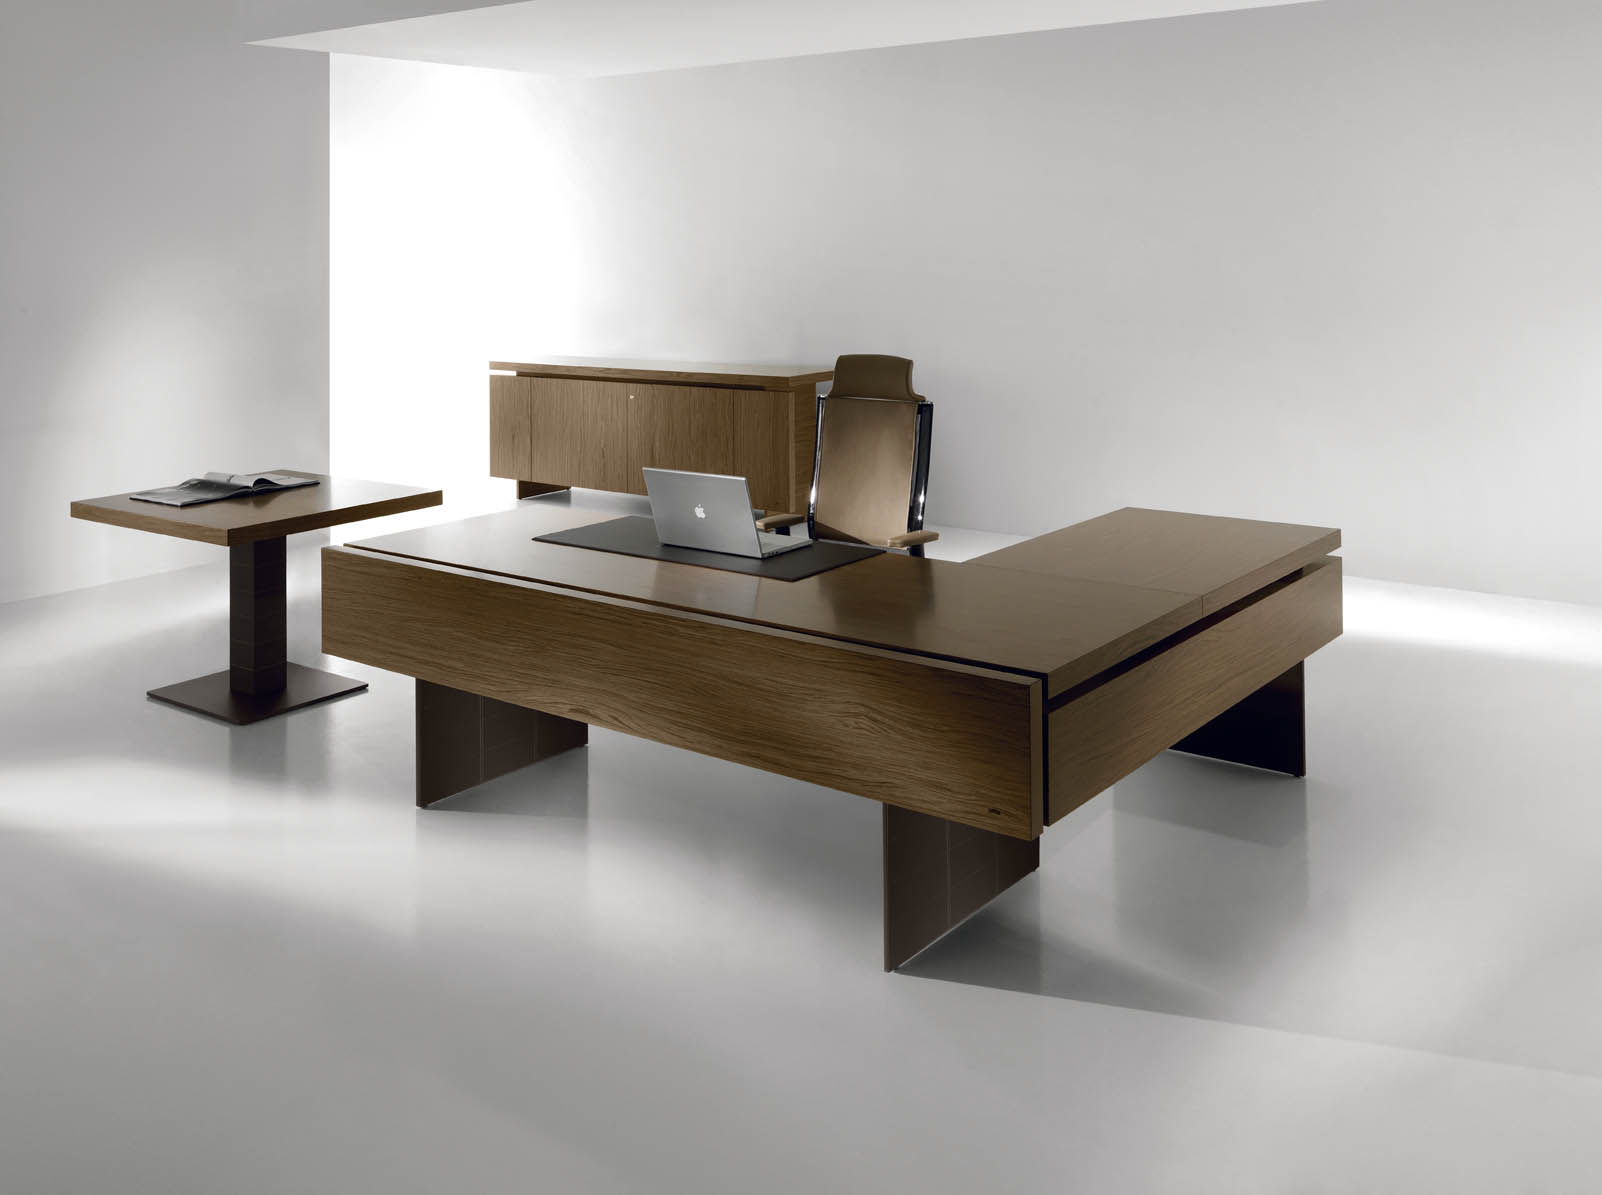 Gamme the element fabricant de mobilier de bureau for Mobilier bureau professionnel design